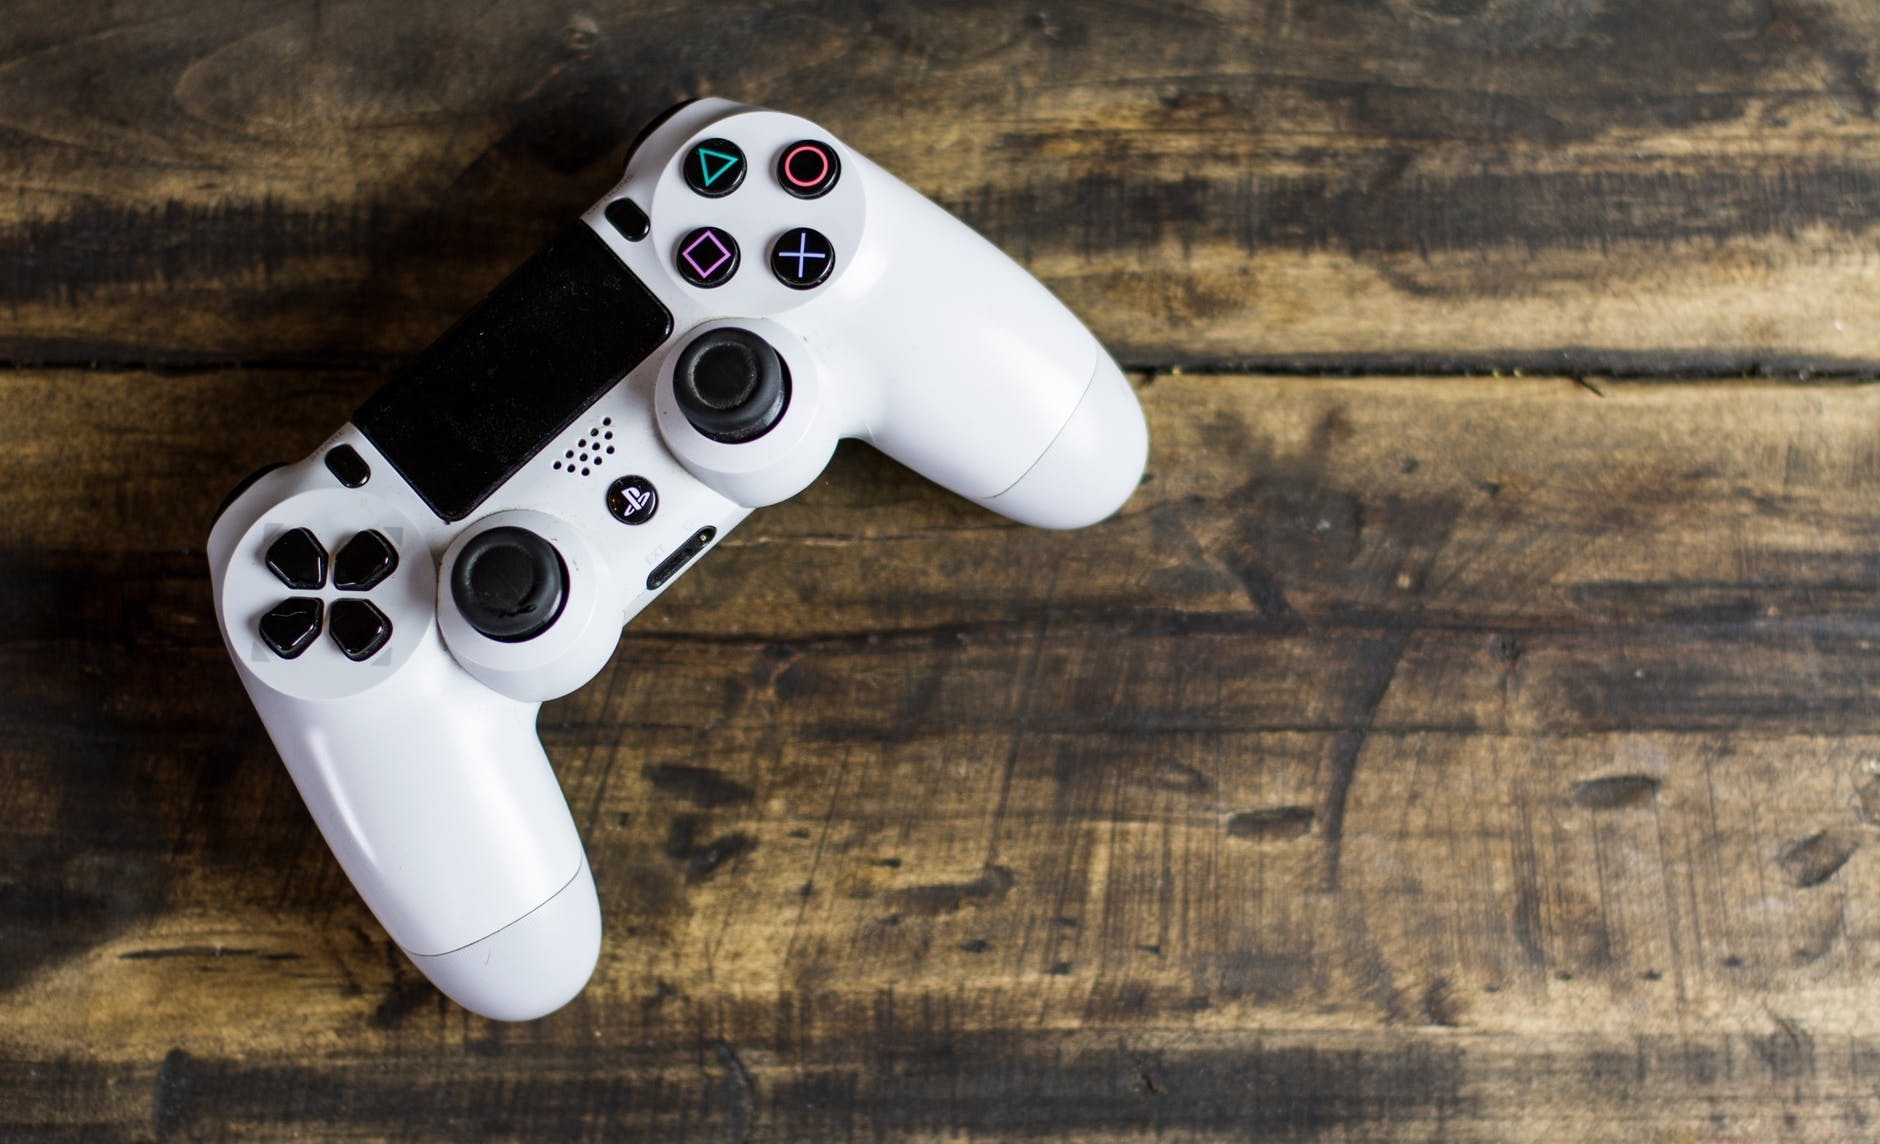 a photo of a dualshock 4 controller